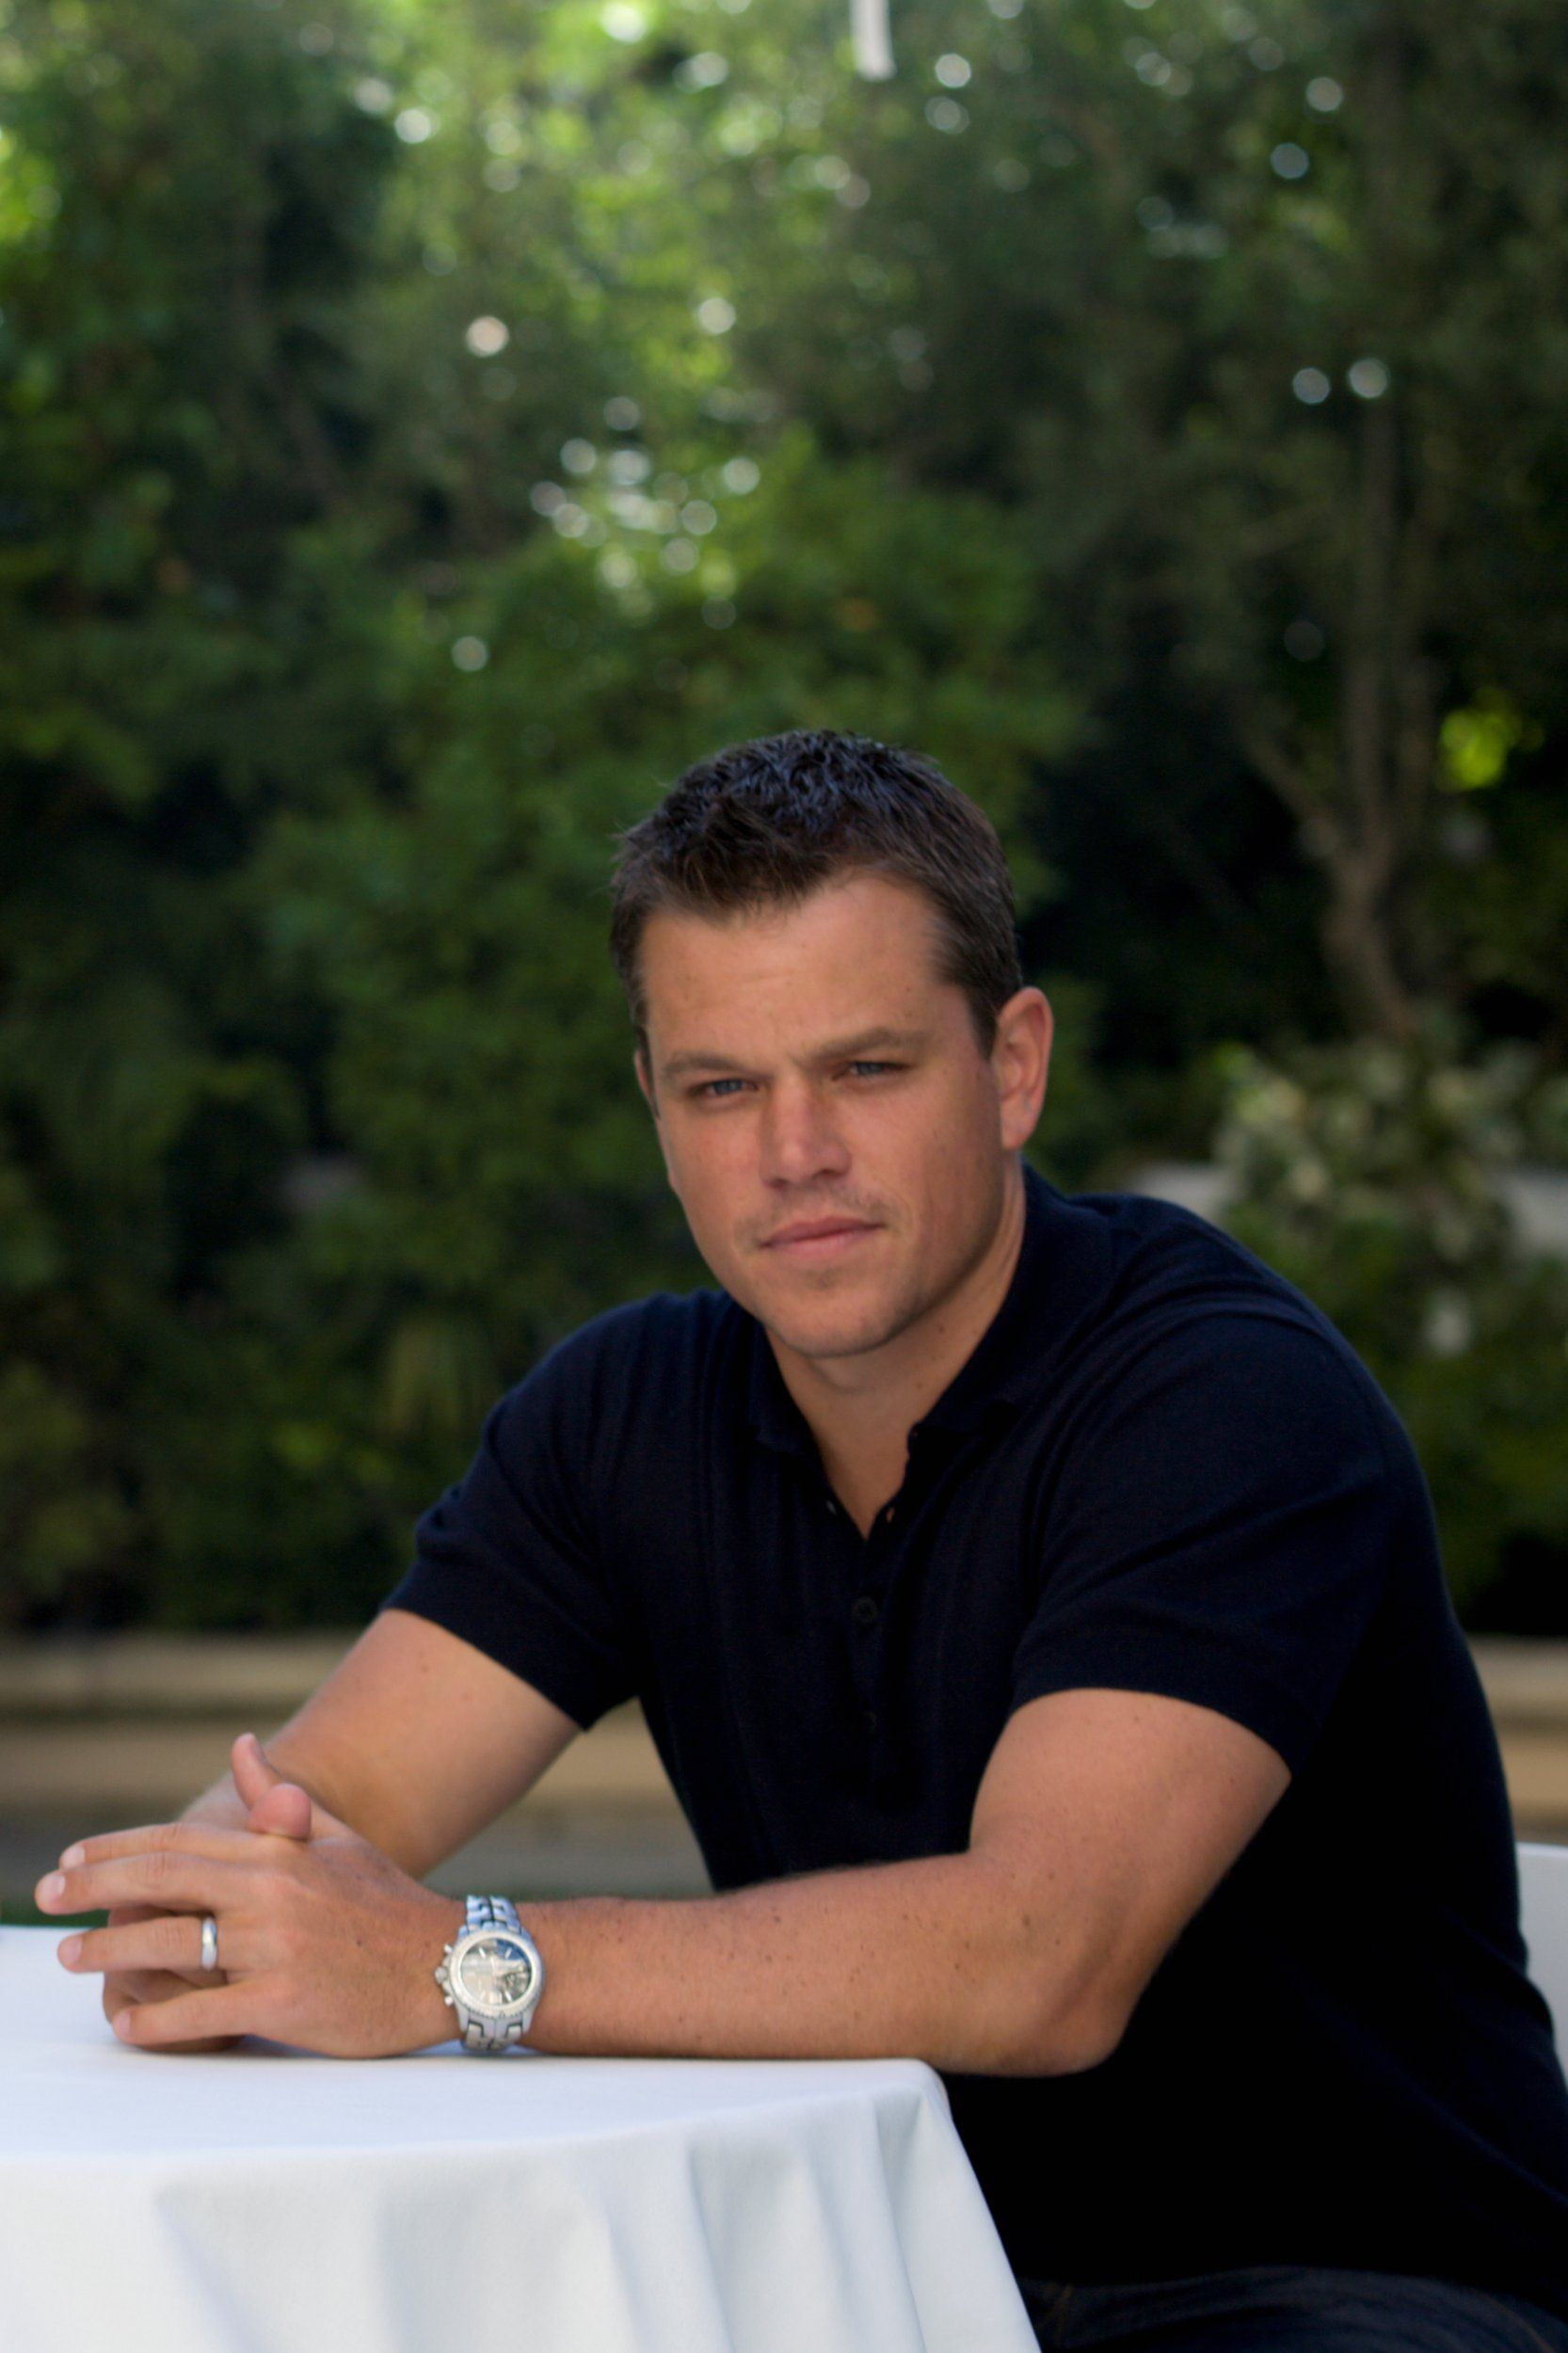 photoshoot #082 - 082-017 - mattdamonfan pictures gallery | matt